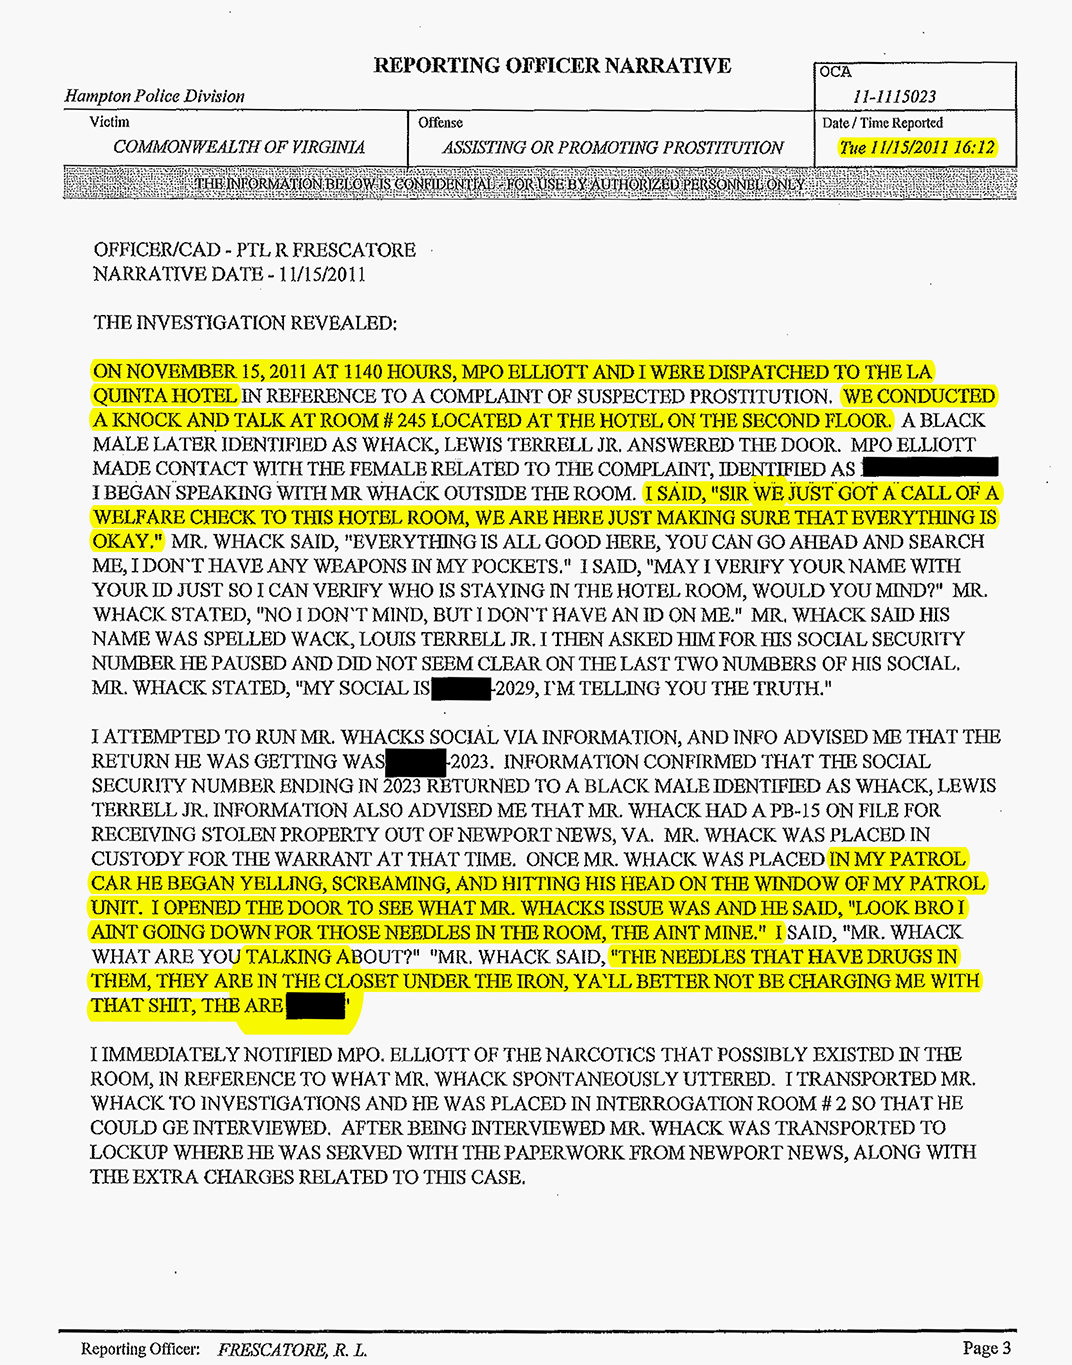 Hampton police report about Ron Miscavige hooker page 1